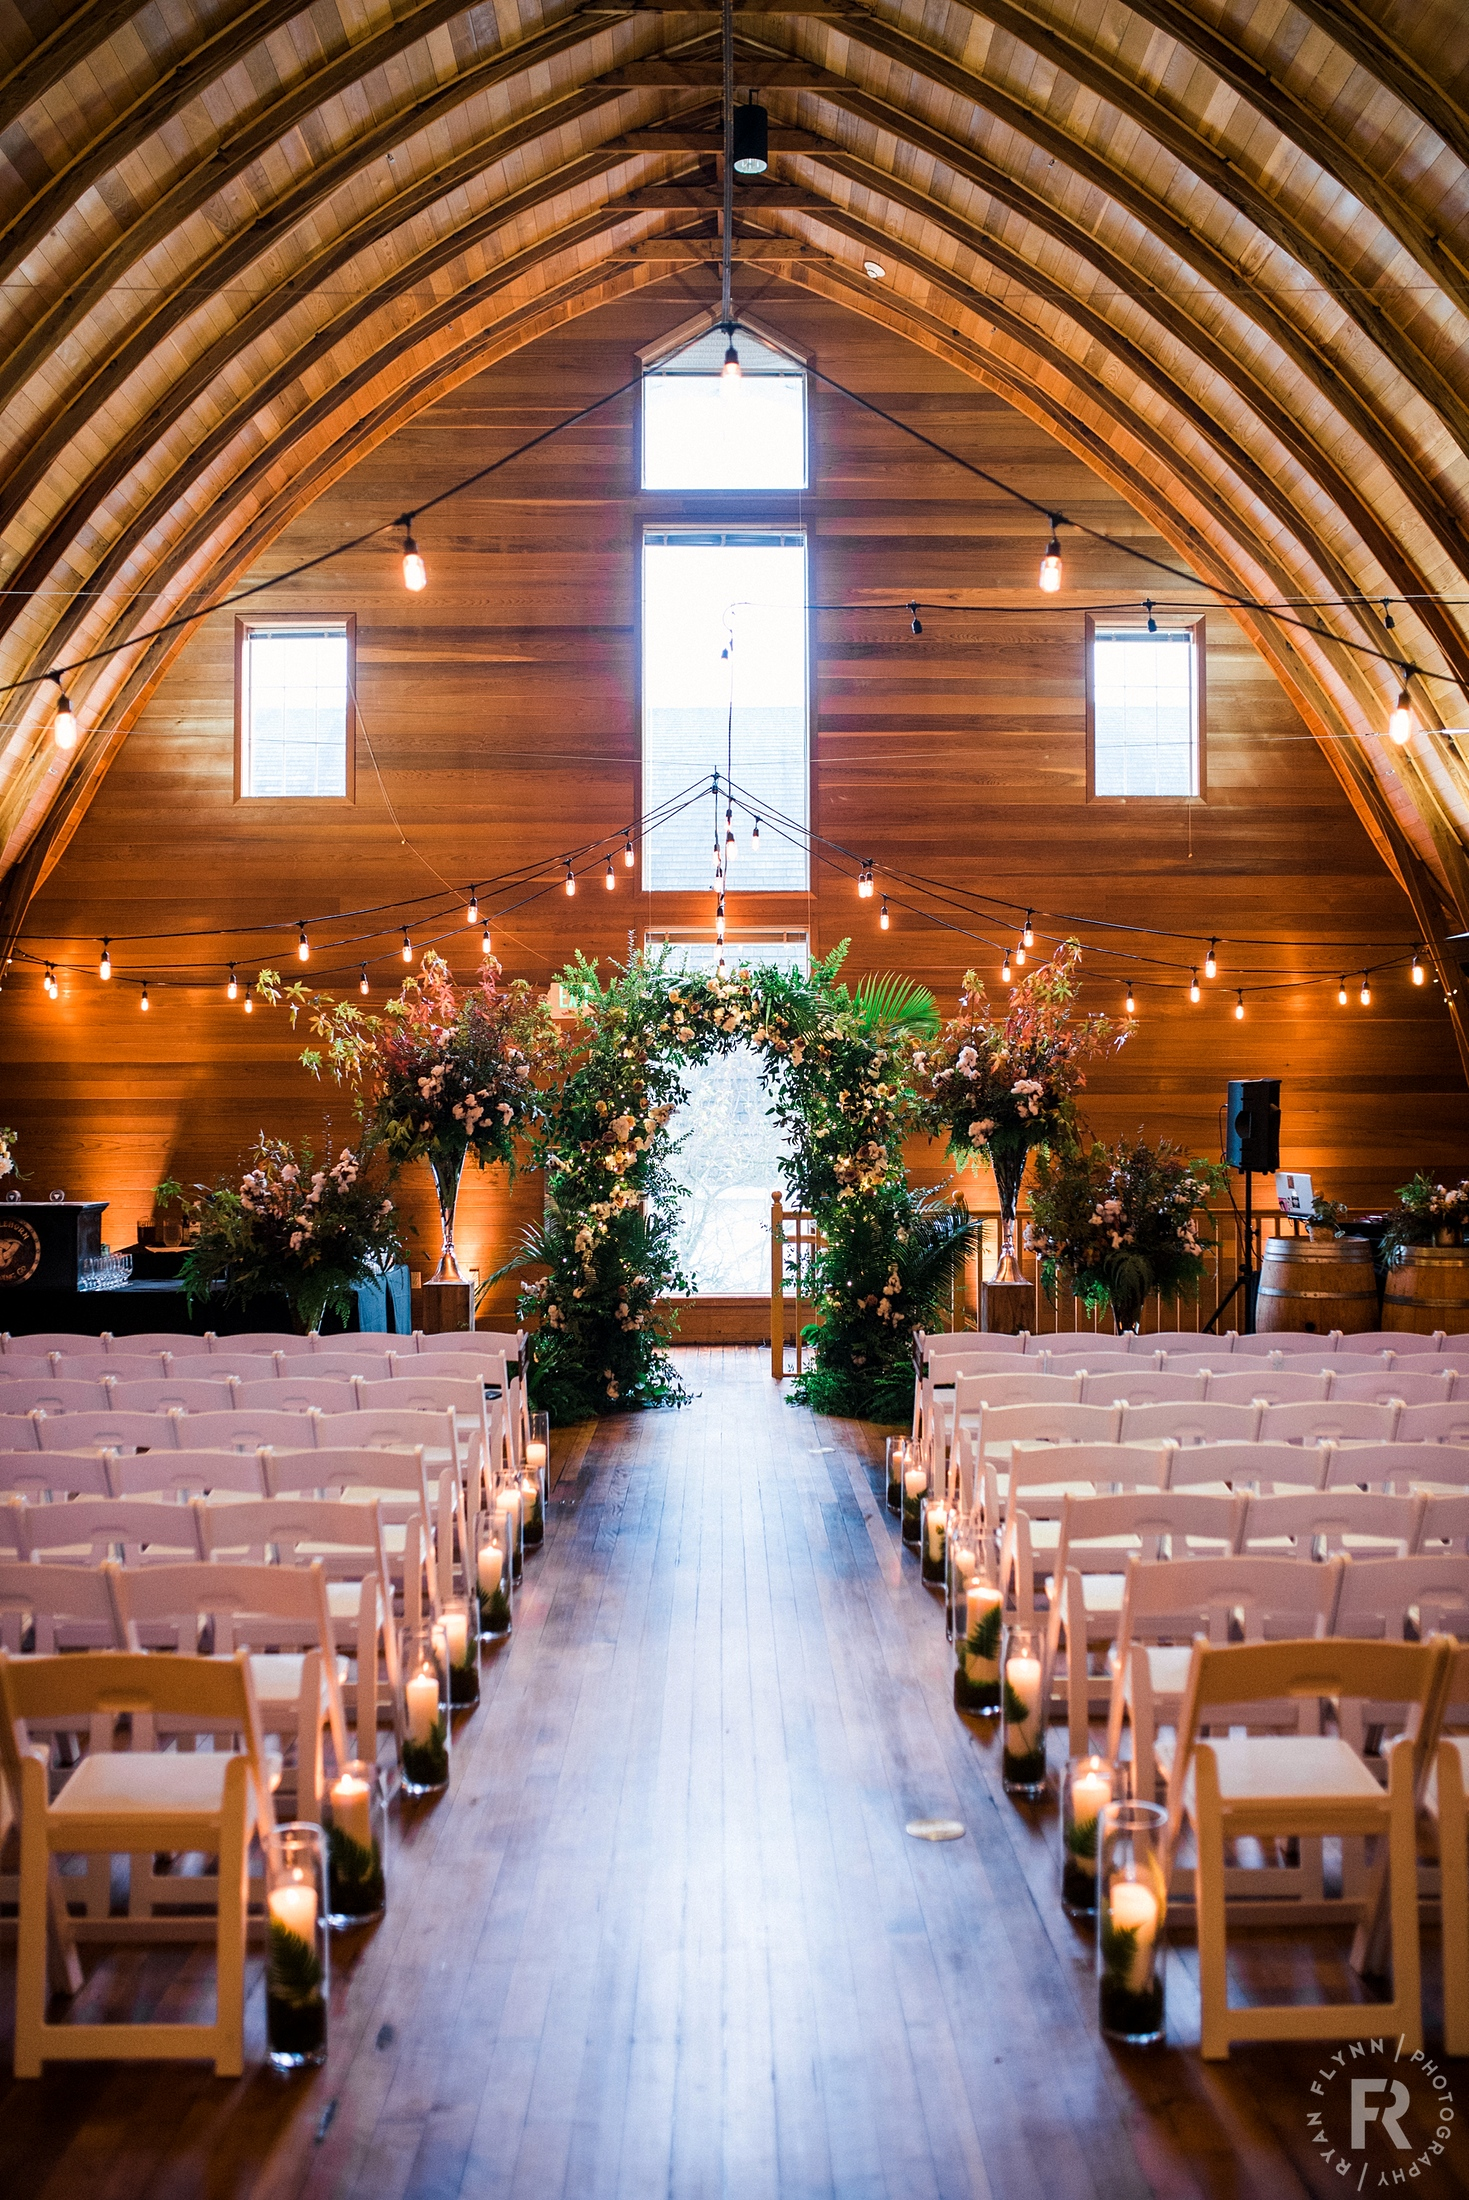 The Loft Is Perfect For A Rustic Wedding Without Doing Full On Barn All Wood Inside Can Be Easily Dressed Up To Many Diffe Styles